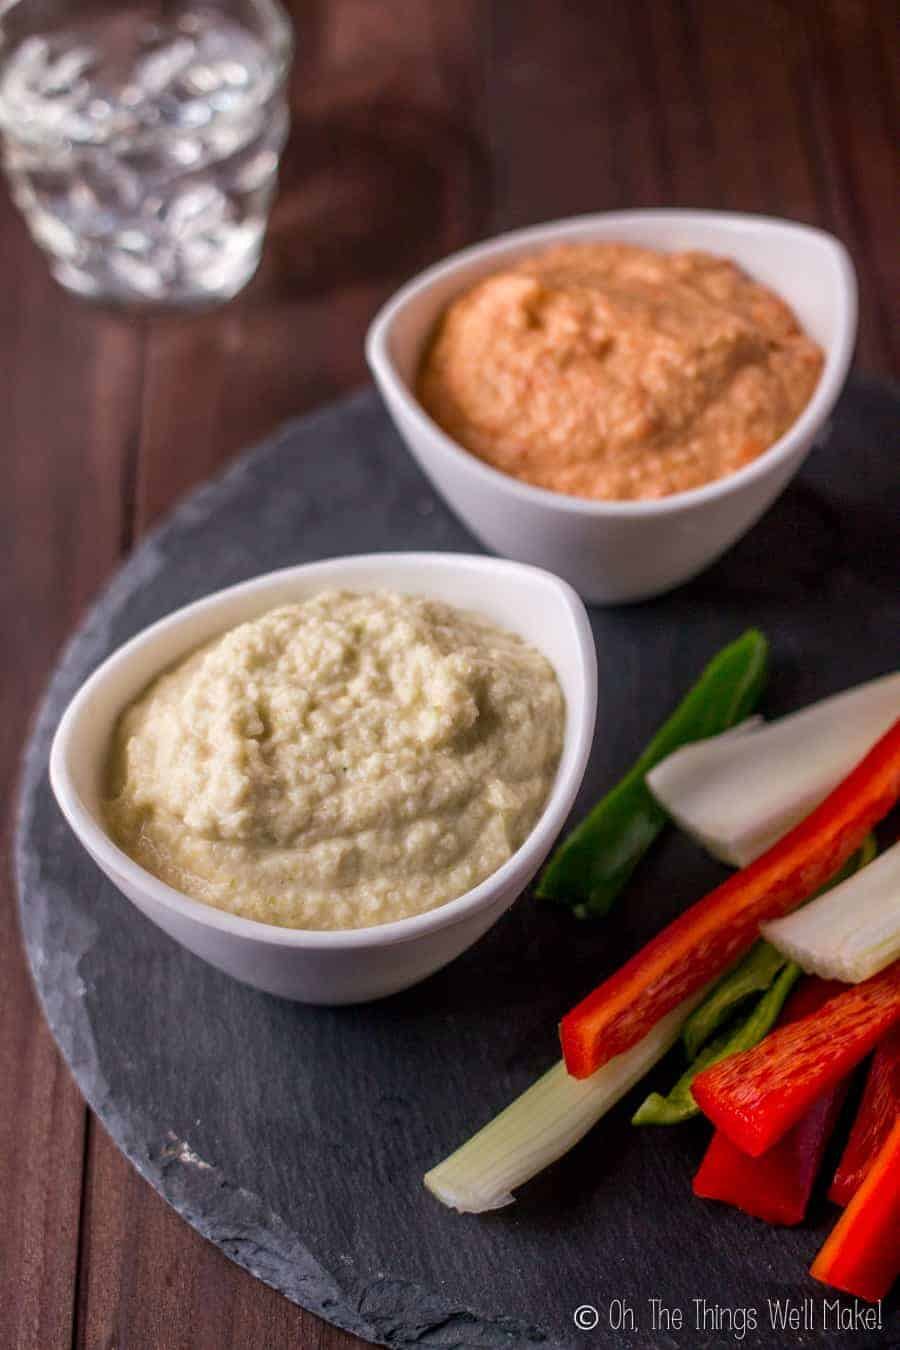 Two bowls of zucchini hummus on a slate platter with cut veggies, one flavored with roasted red peppers